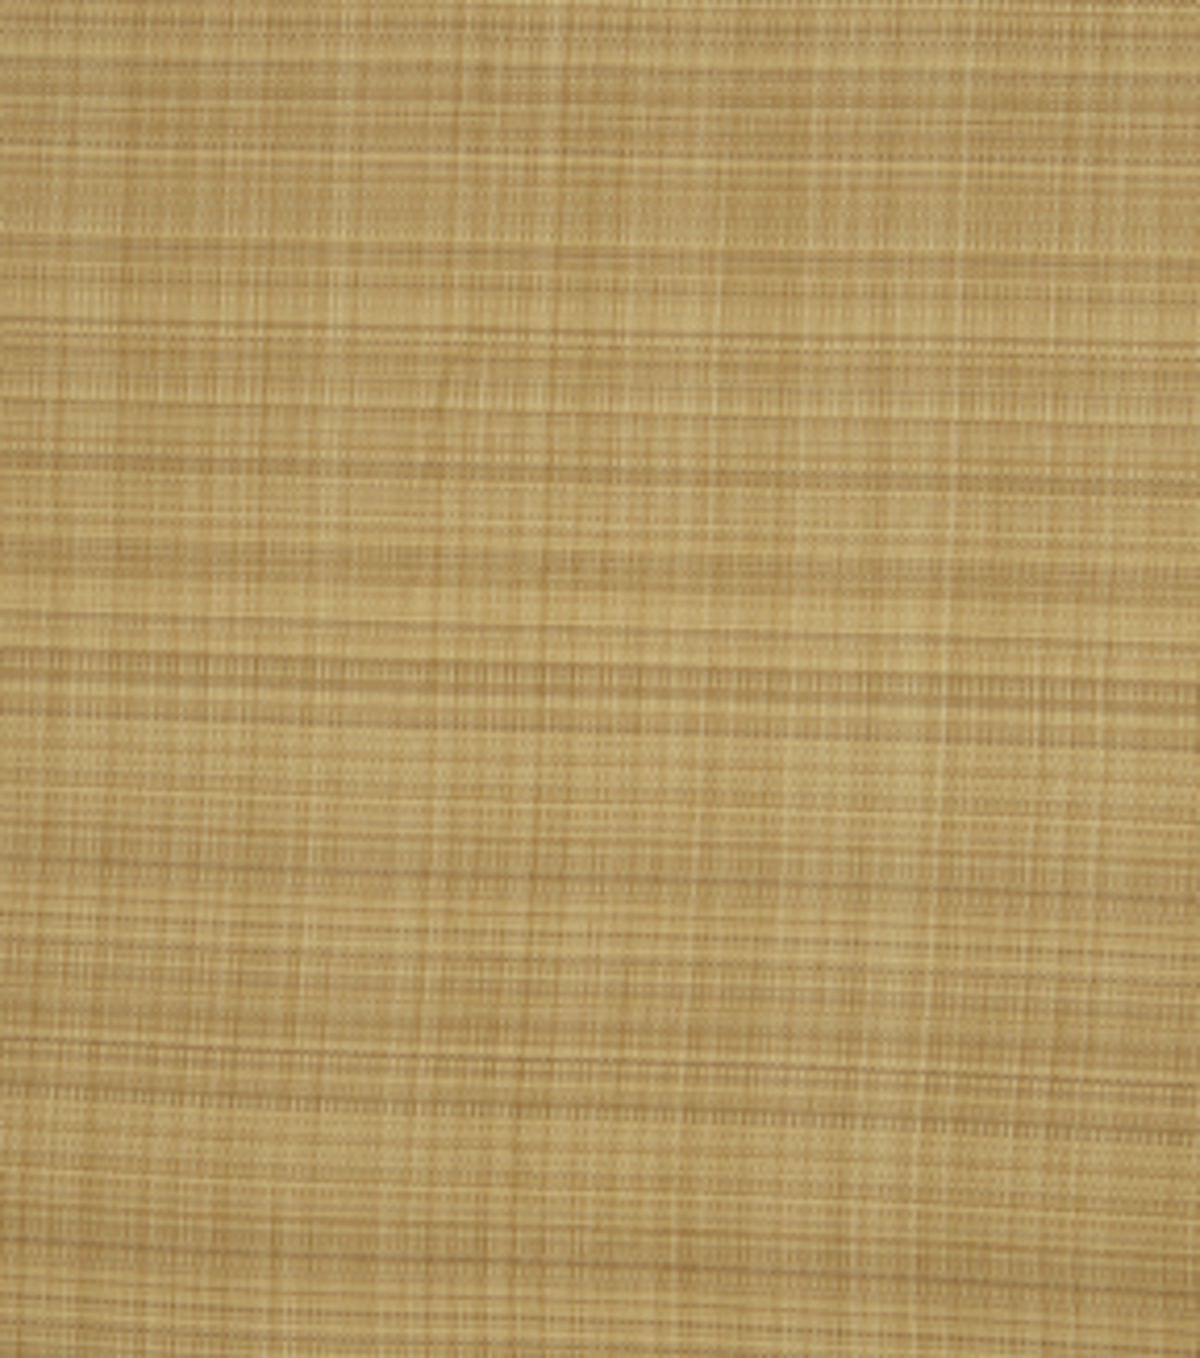 Home Decor 8\u0022x8\u0022 Fabric Swatch-Bella Dura Antelope Rattan